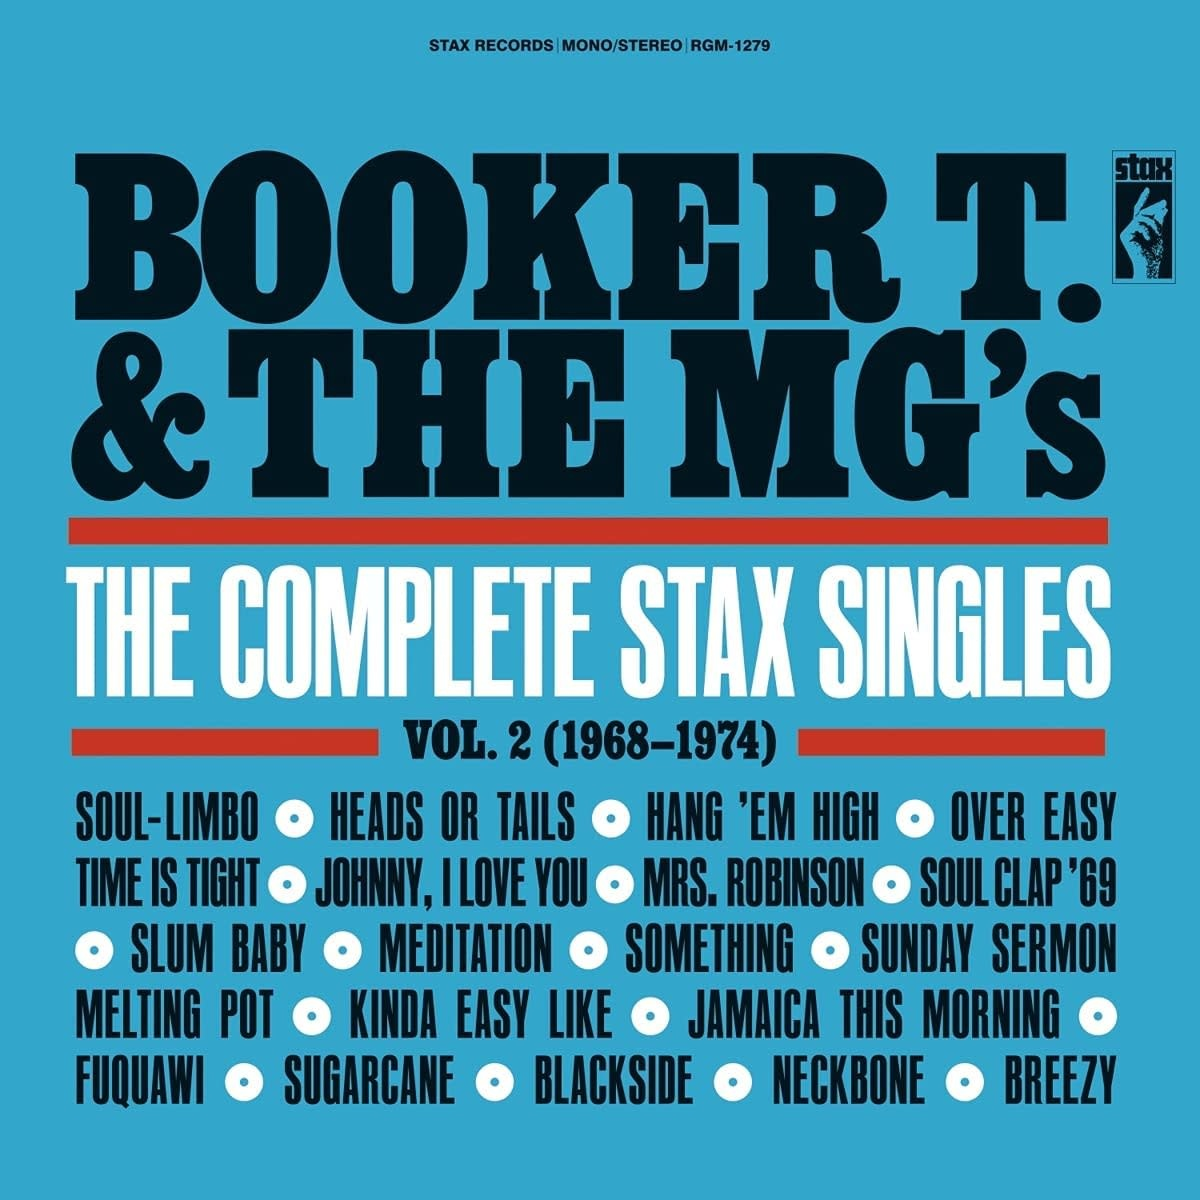 Booker T. & The Mg's - The Complete Stax Singles Vol. 2 (1968-1974)